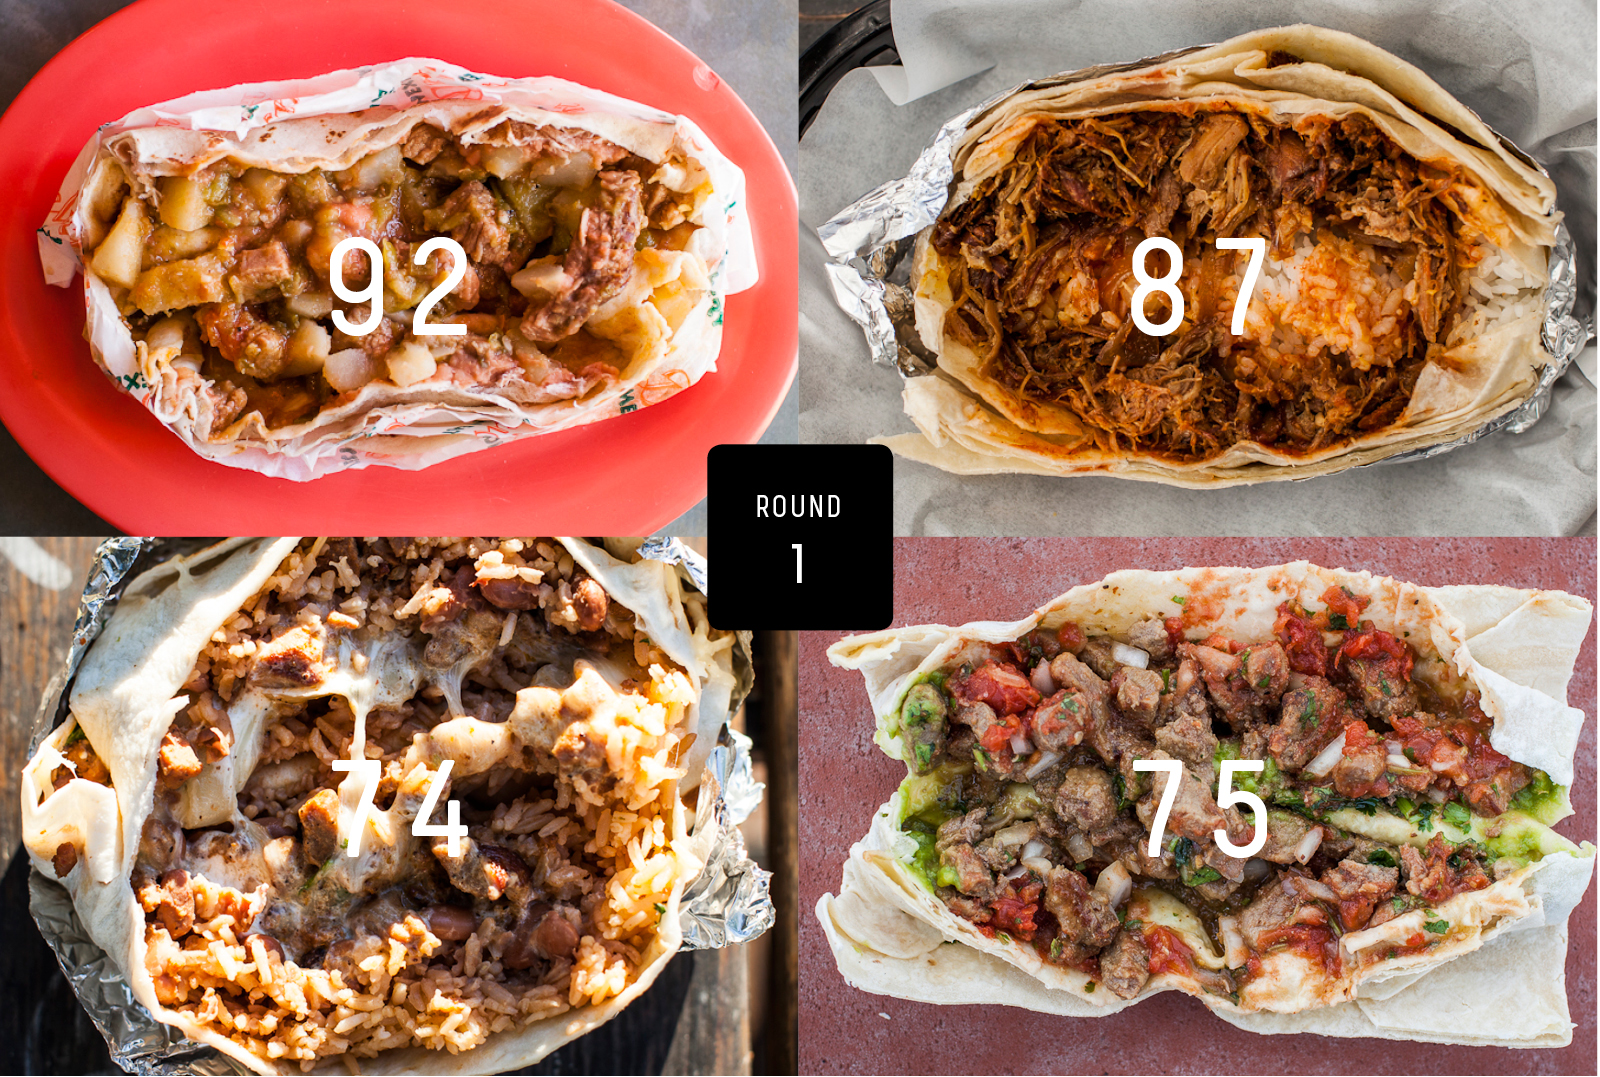 Clockwise from top left: Delicious Mexican Eatery, Kono's, Joel's, Rancho Bravo.